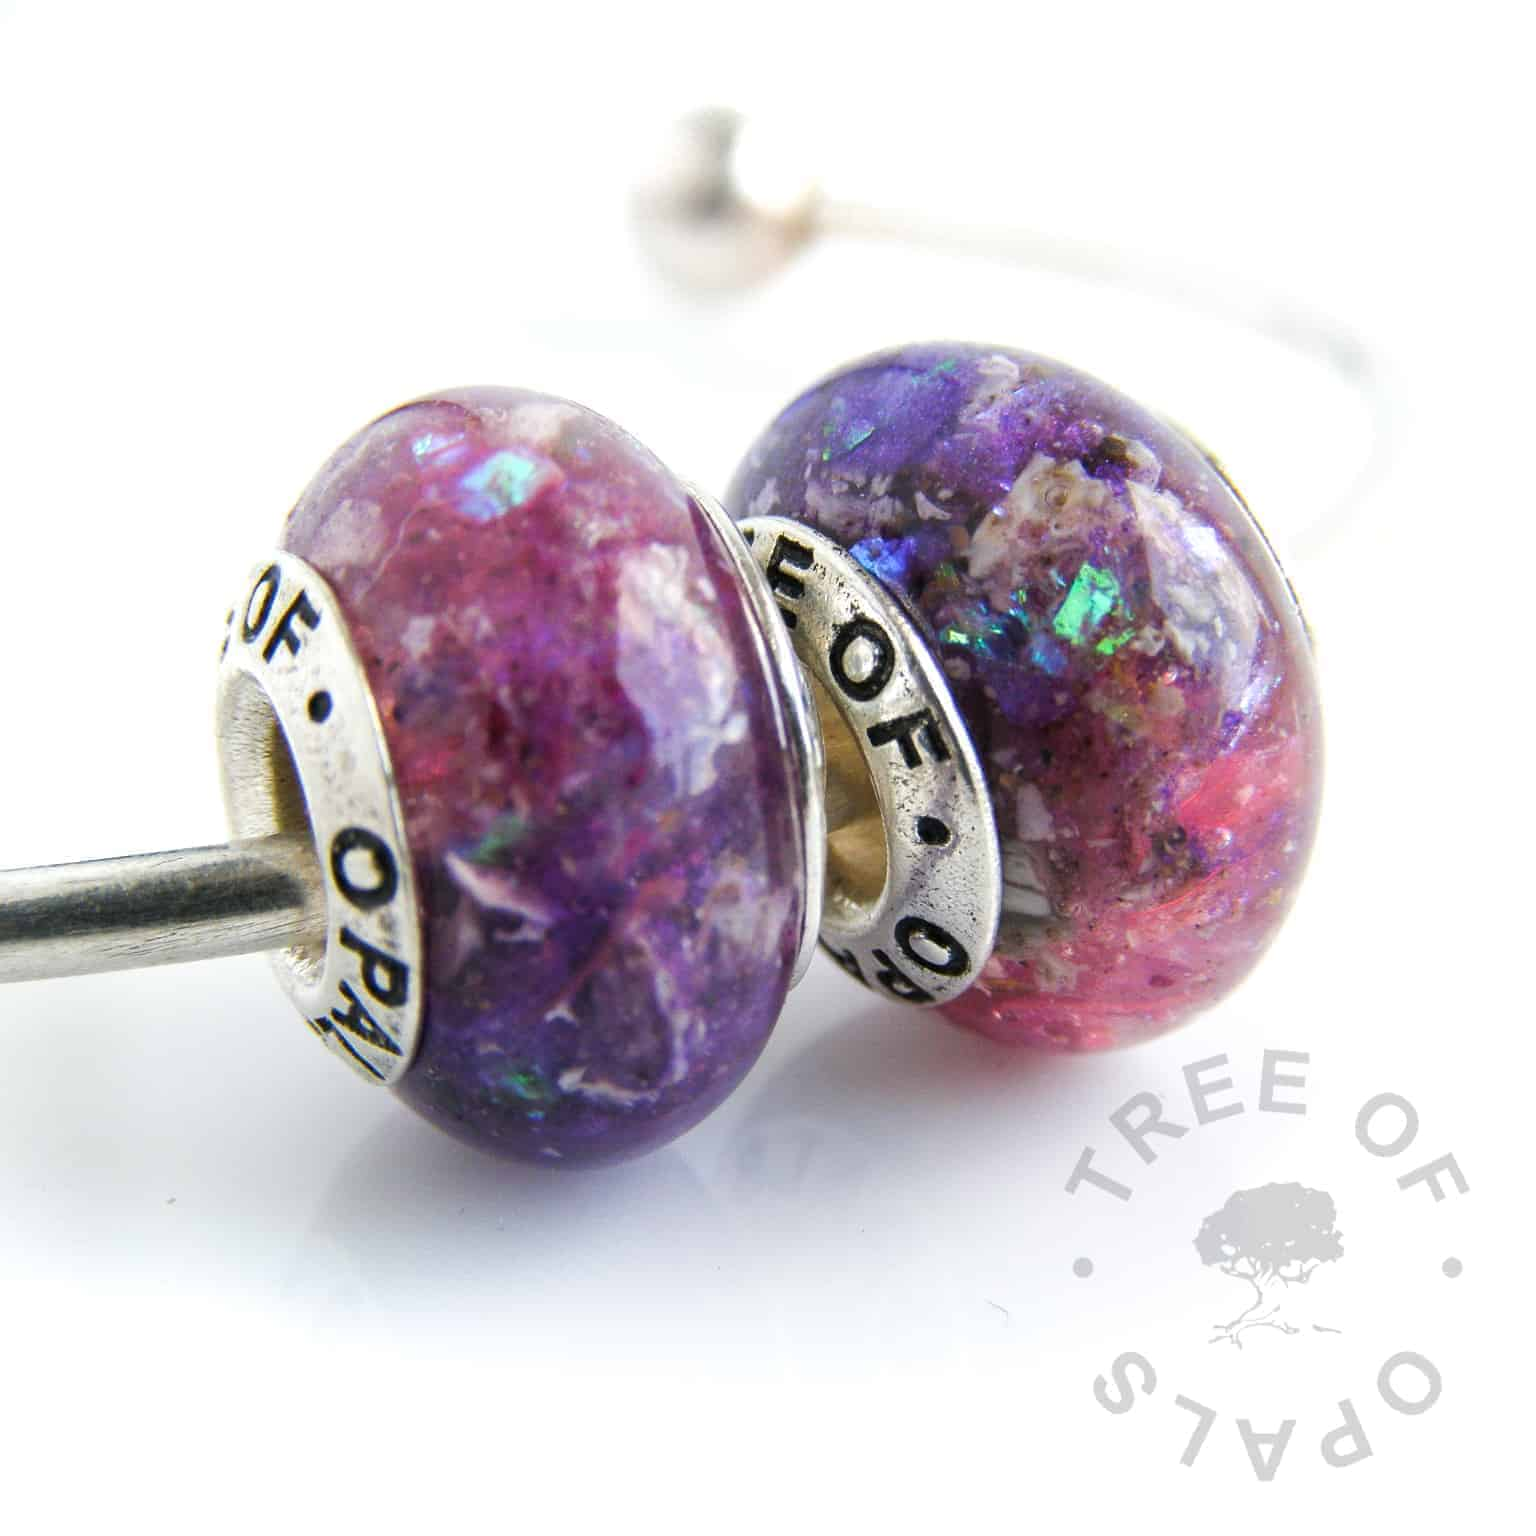 cremation ash charm duo, with red garnet (January birthstone) two beads with cremains, pink and purple opalescent flakes and violet and indigo shimmer powder, set with solid sterling silver Tree of Opals signature cores. Perfect memorial gift